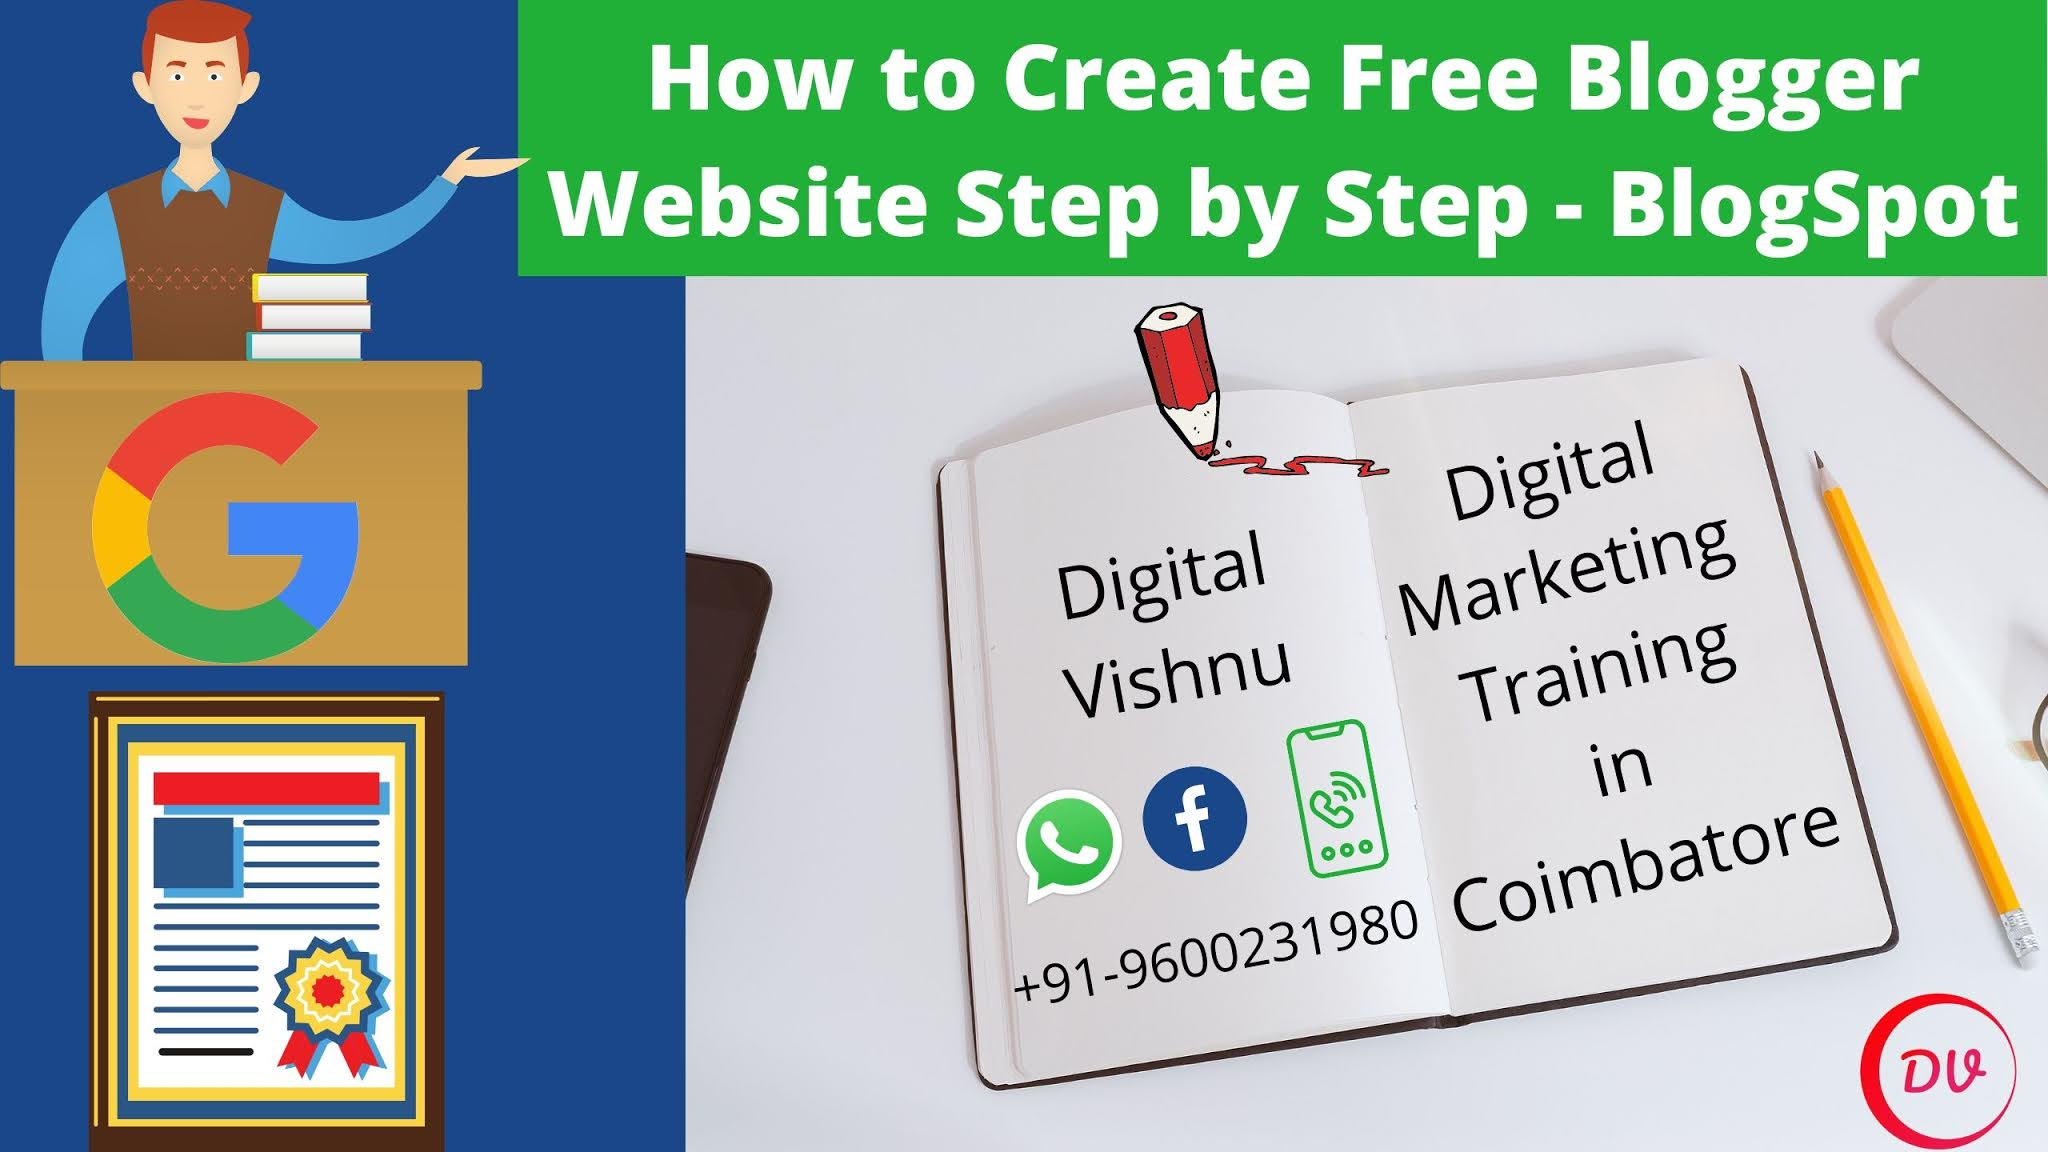 How to Create Free Blogger Website Step by Step - Blog Spot